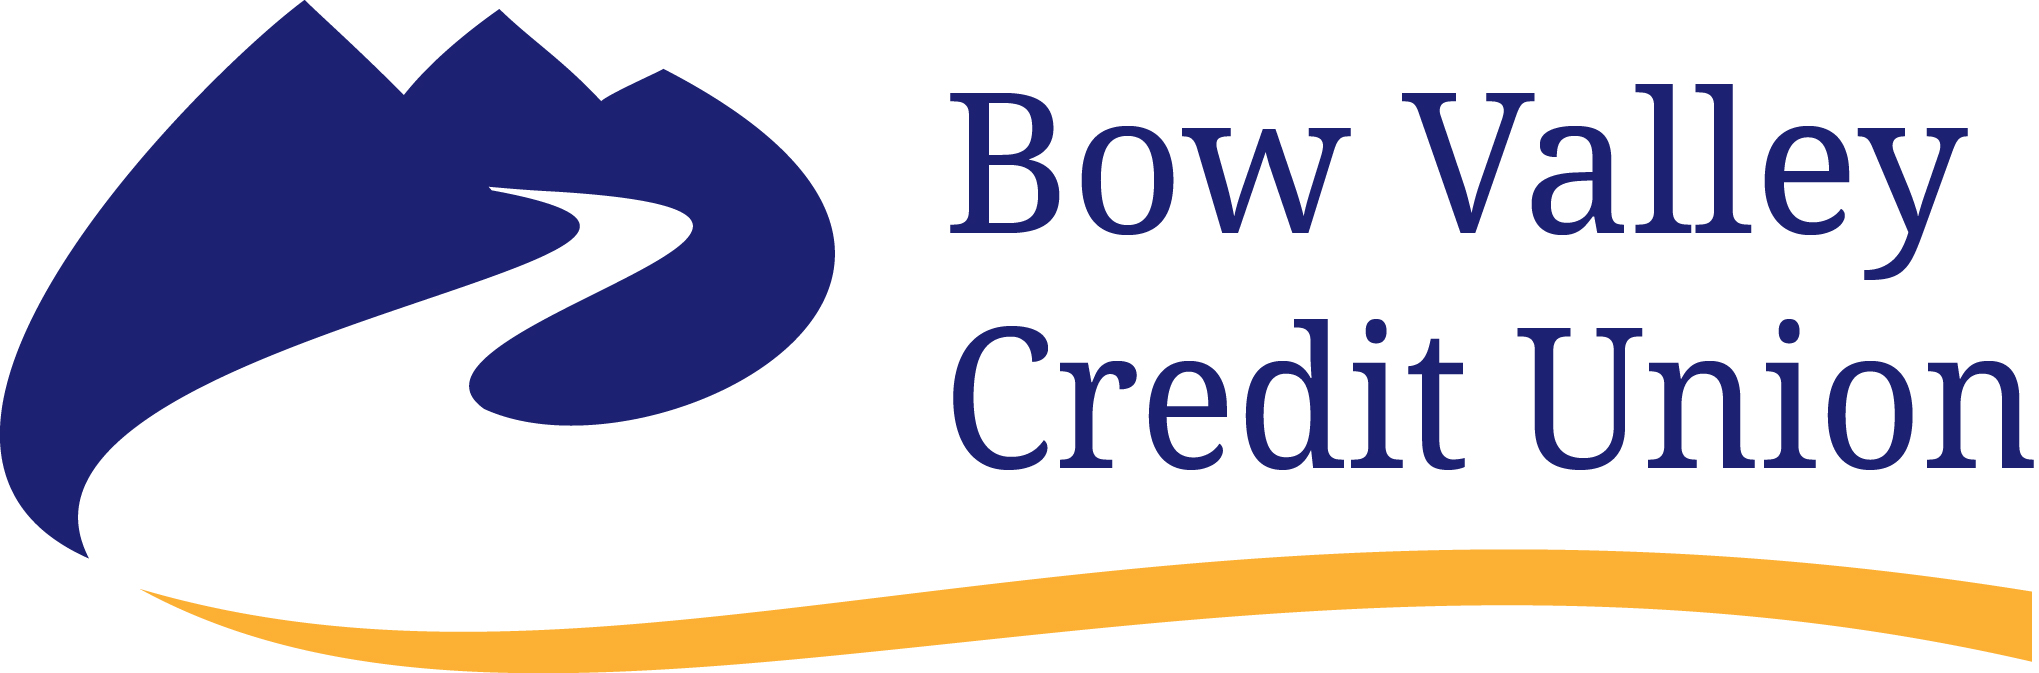 Bow_Valley_Credit_Union_Logo.jpg